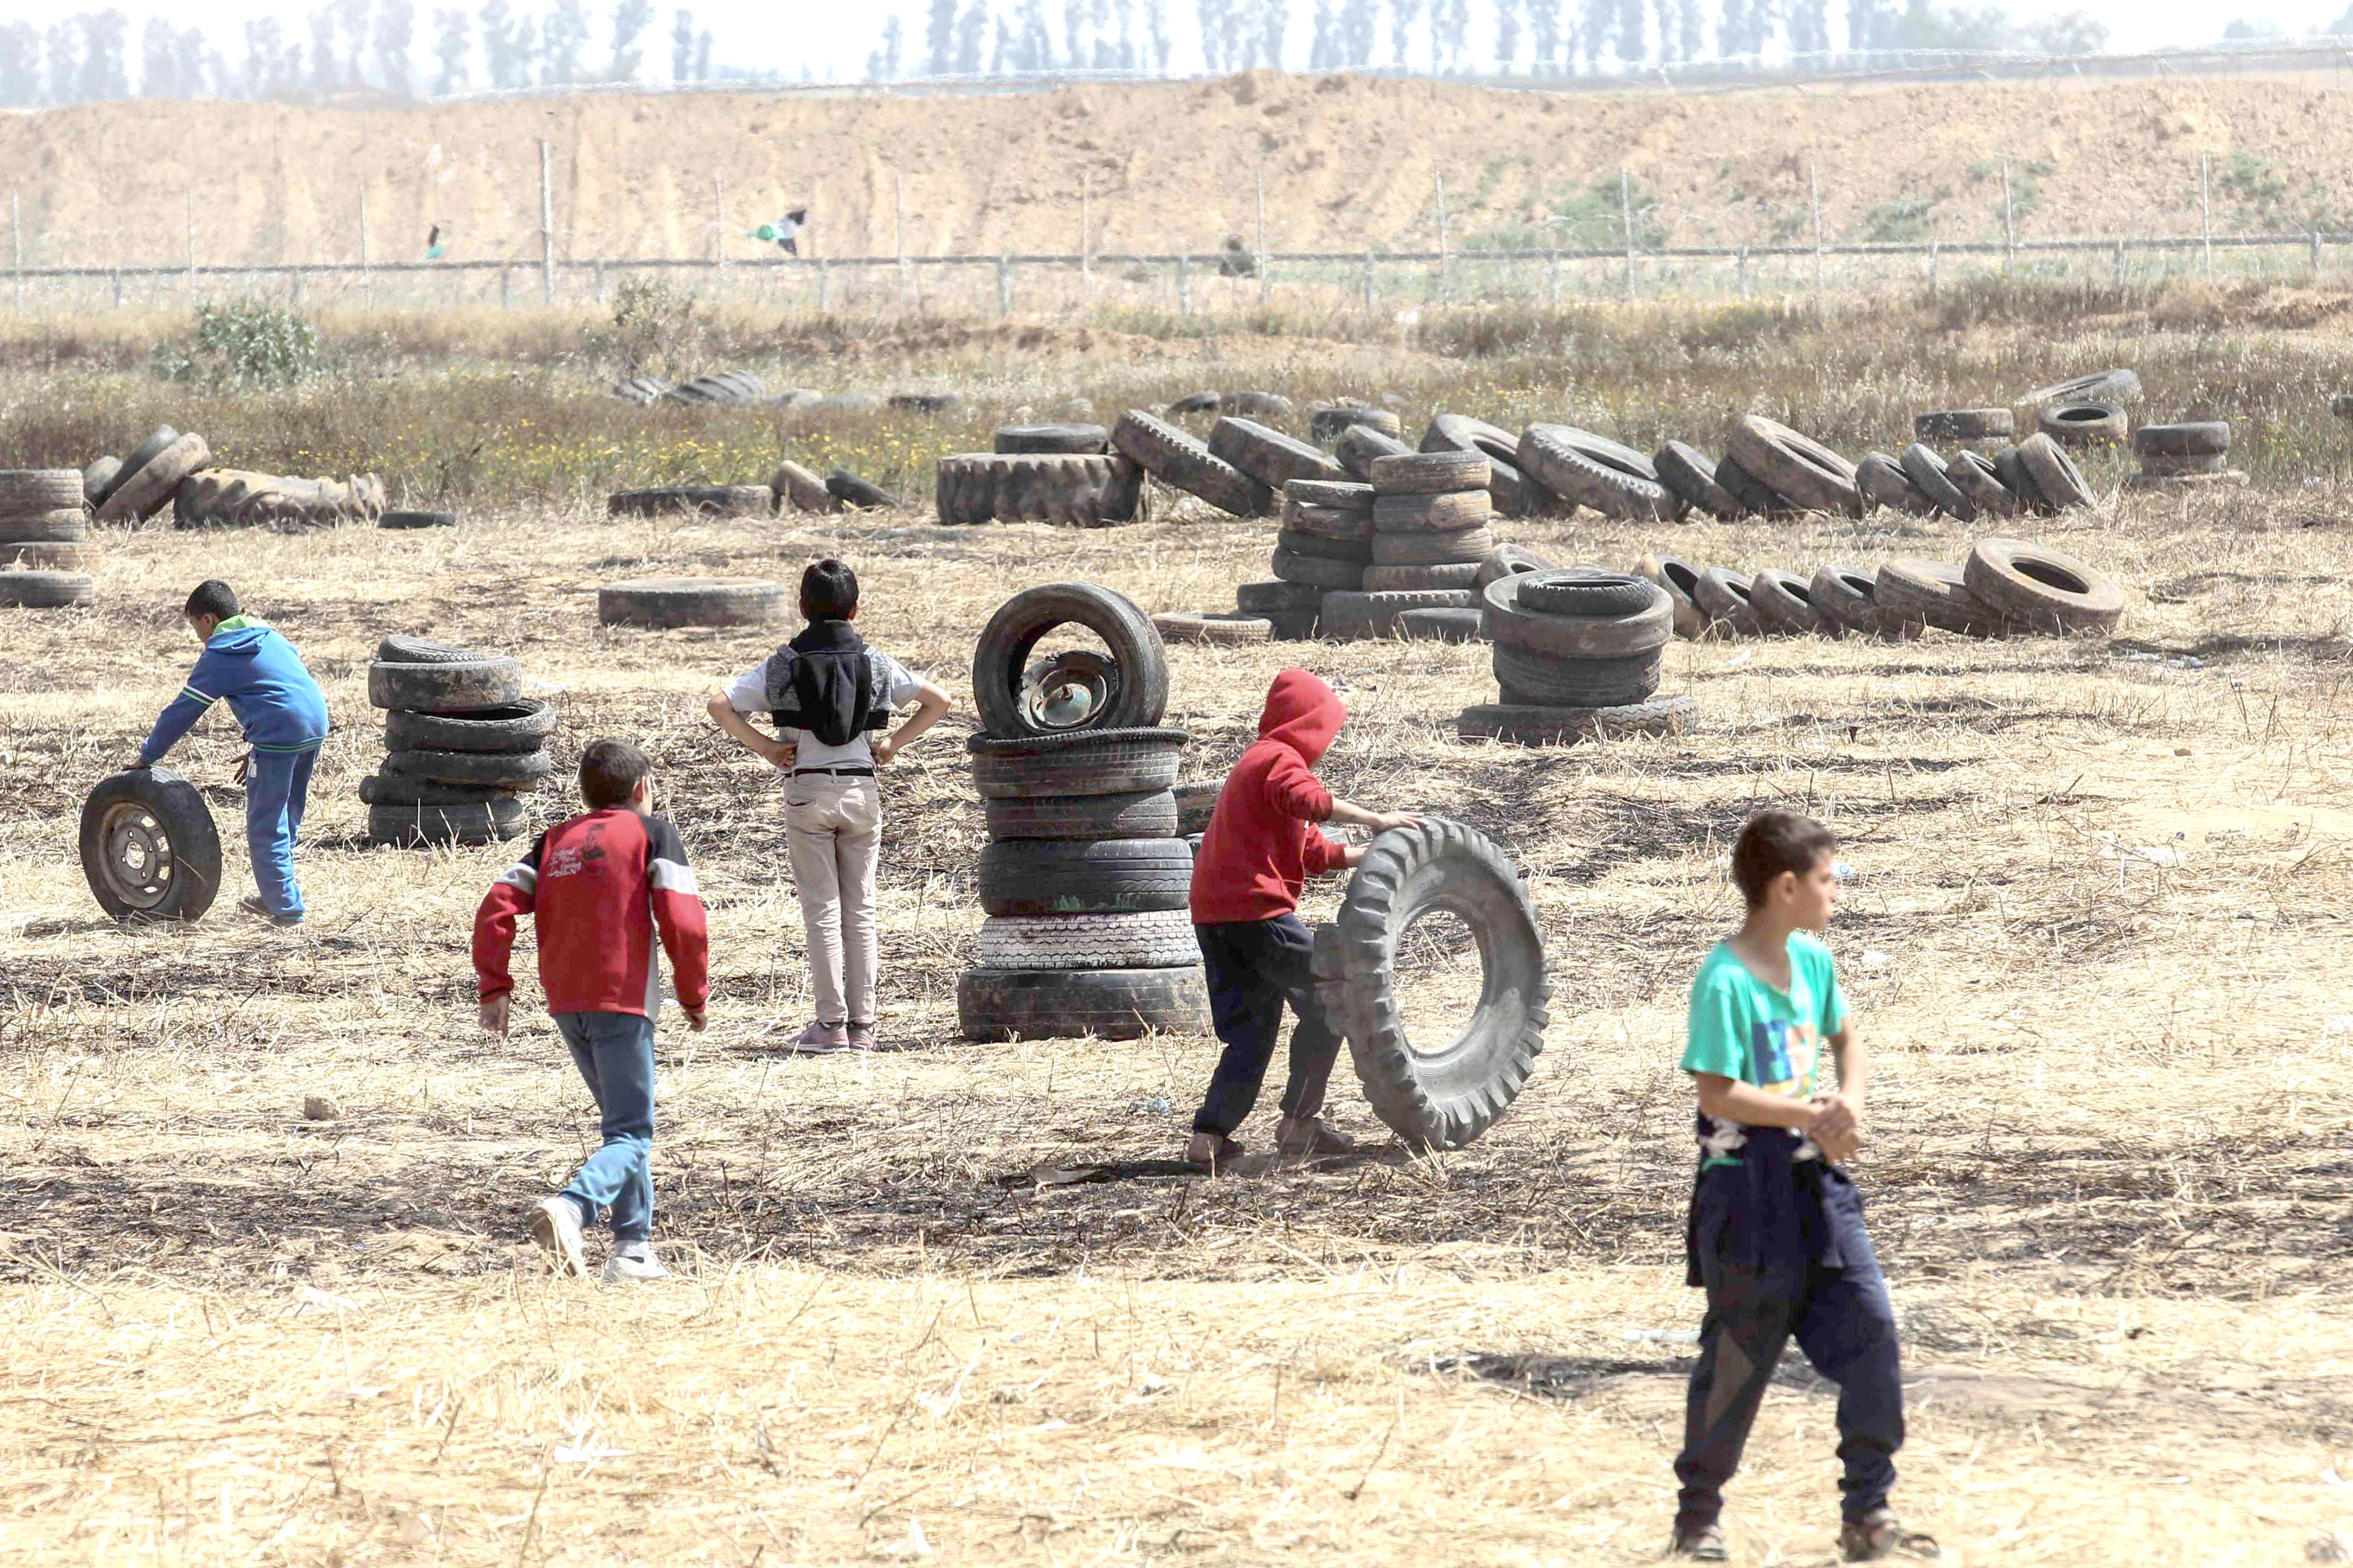 Palestinian children collect tyres before burning them to protect themselves from shots by Israeli soldiers near the Israel-Gaza border. (AFP)